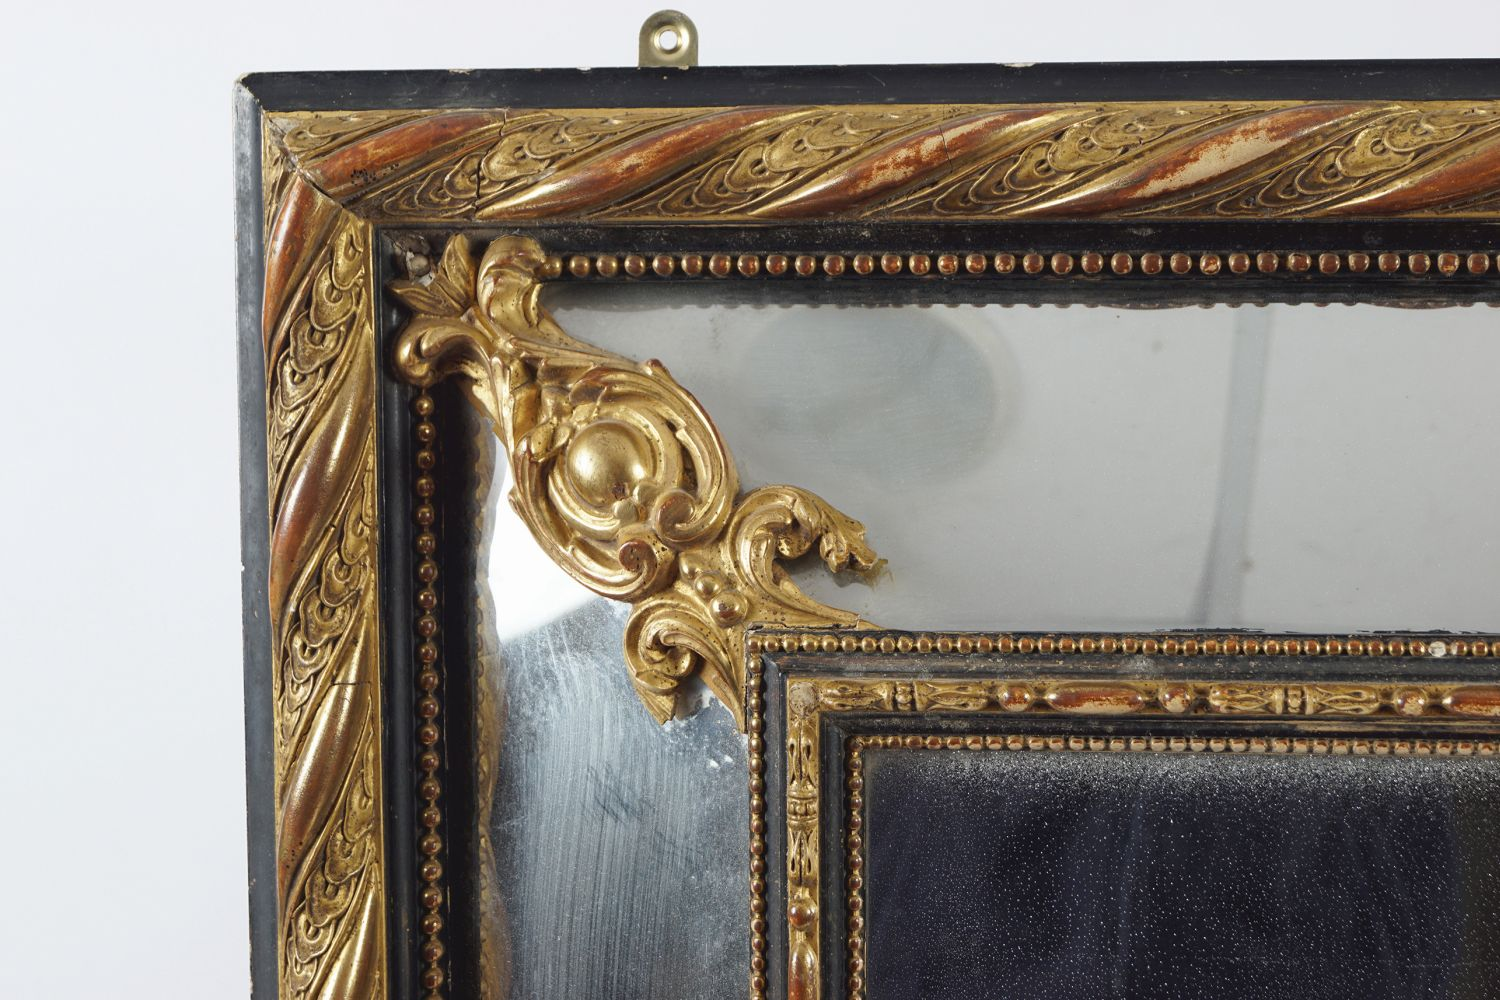 19TH-CENTURY GILT FRAMED OVER MANTLE MIRROR - Image 3 of 3